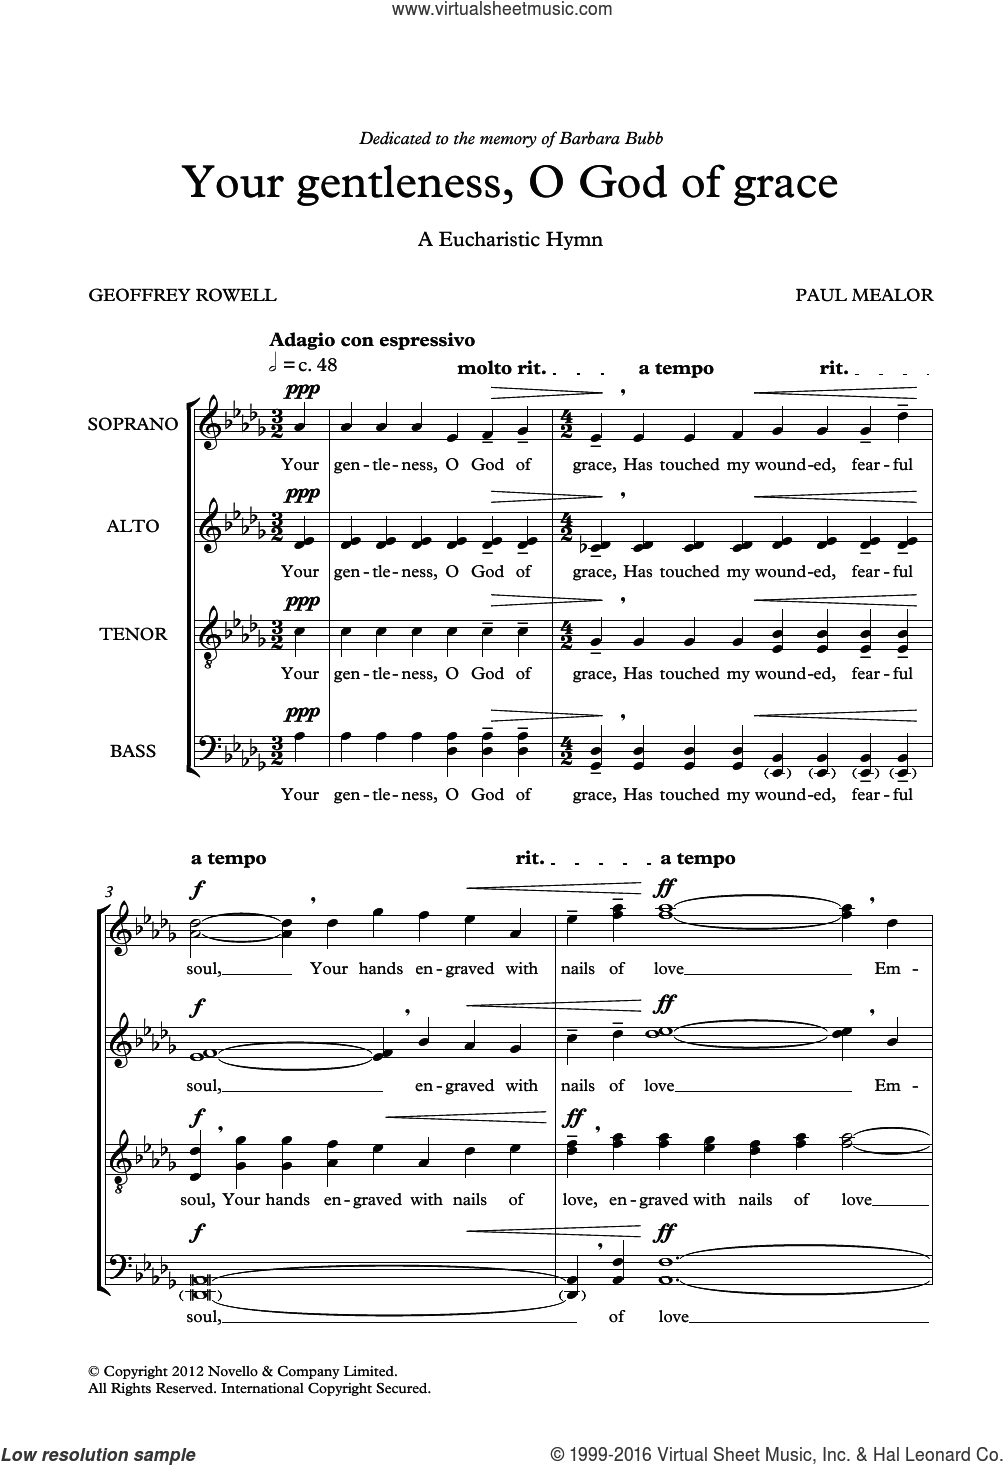 Your Gentleness, O God Of Grace sheet music for voice, piano or guitar by Geoffrey Rowell